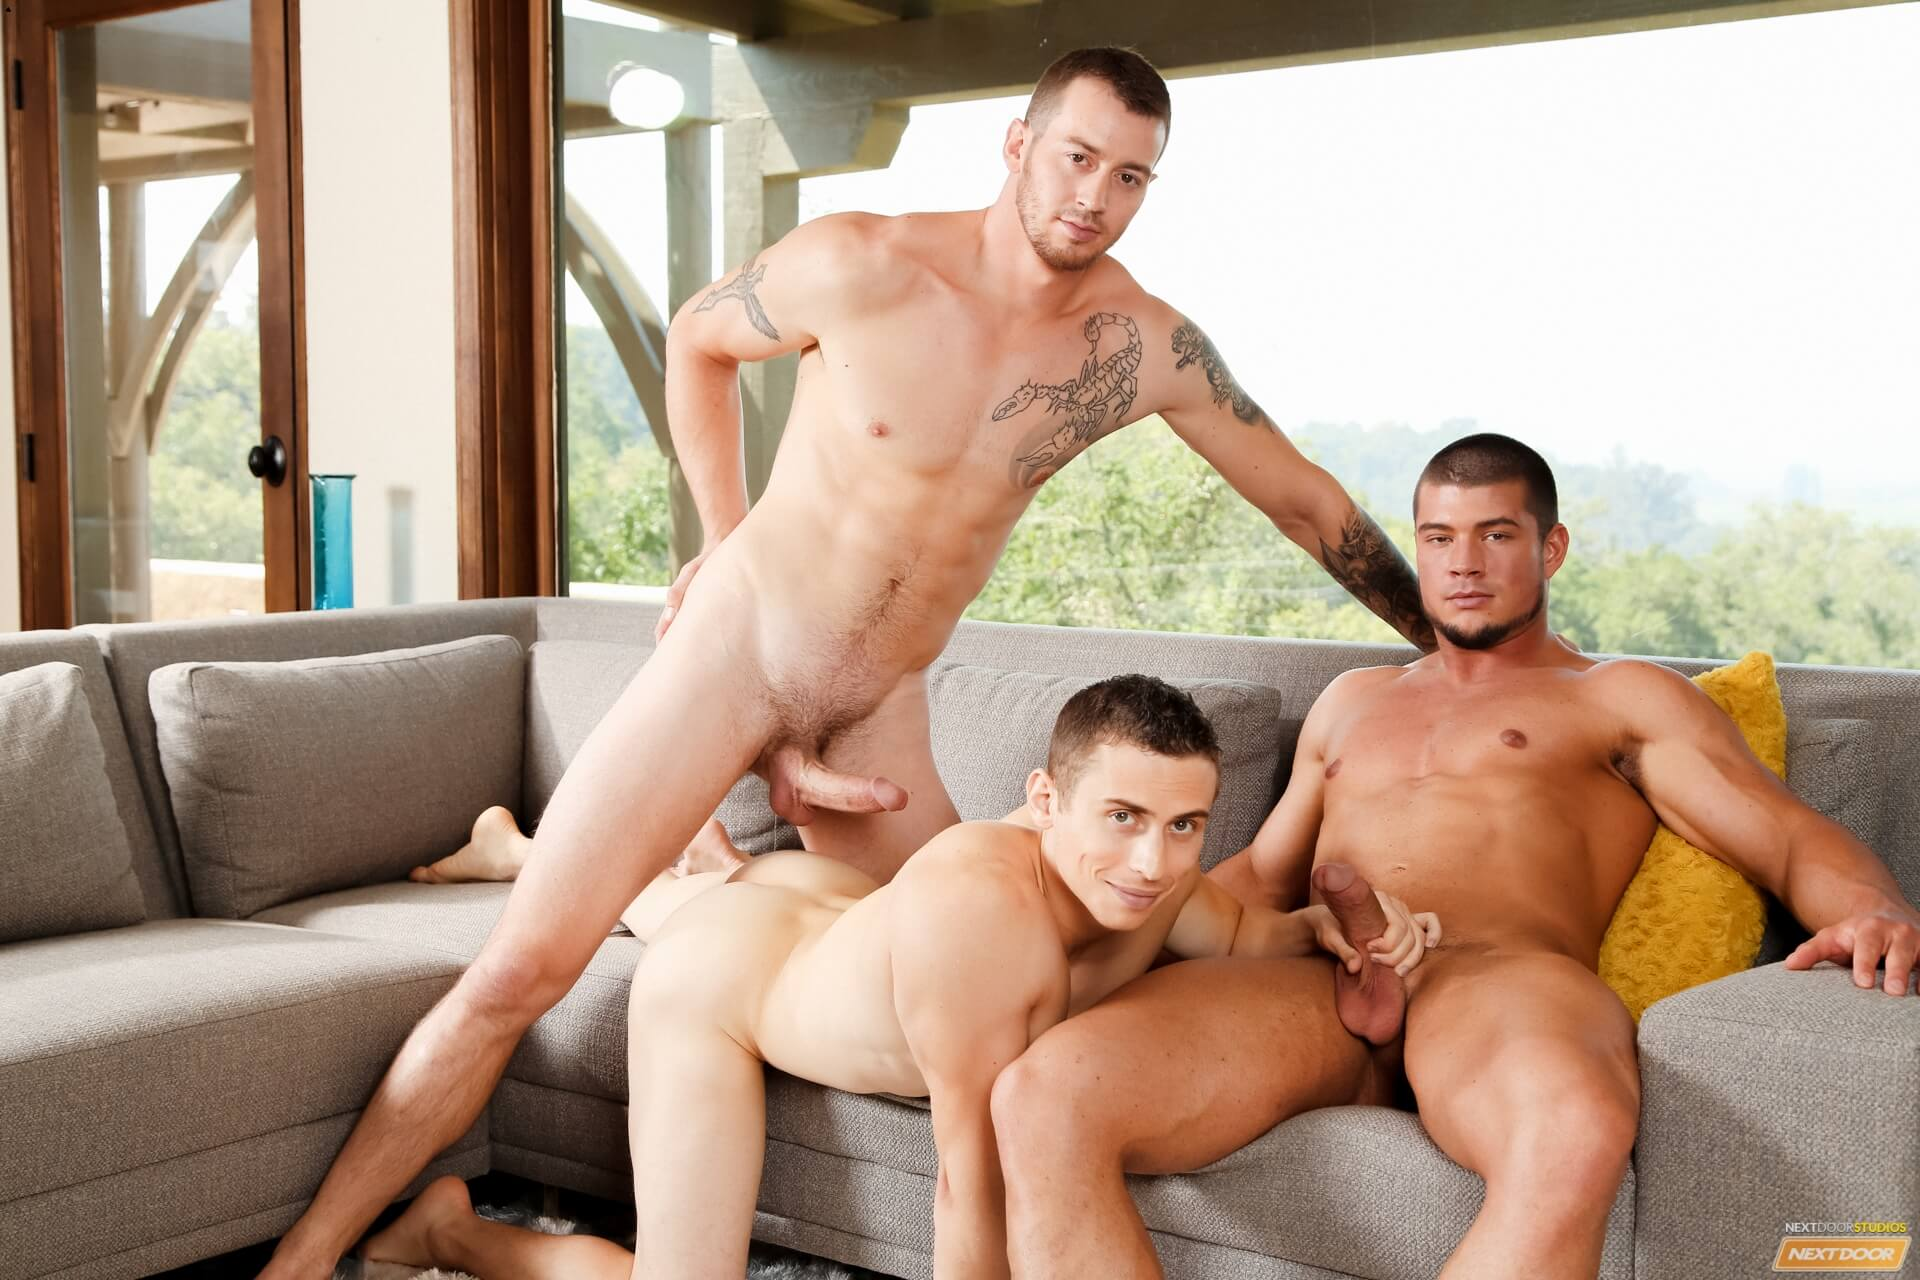 Amazing gay scene bryan makes kyler squirm